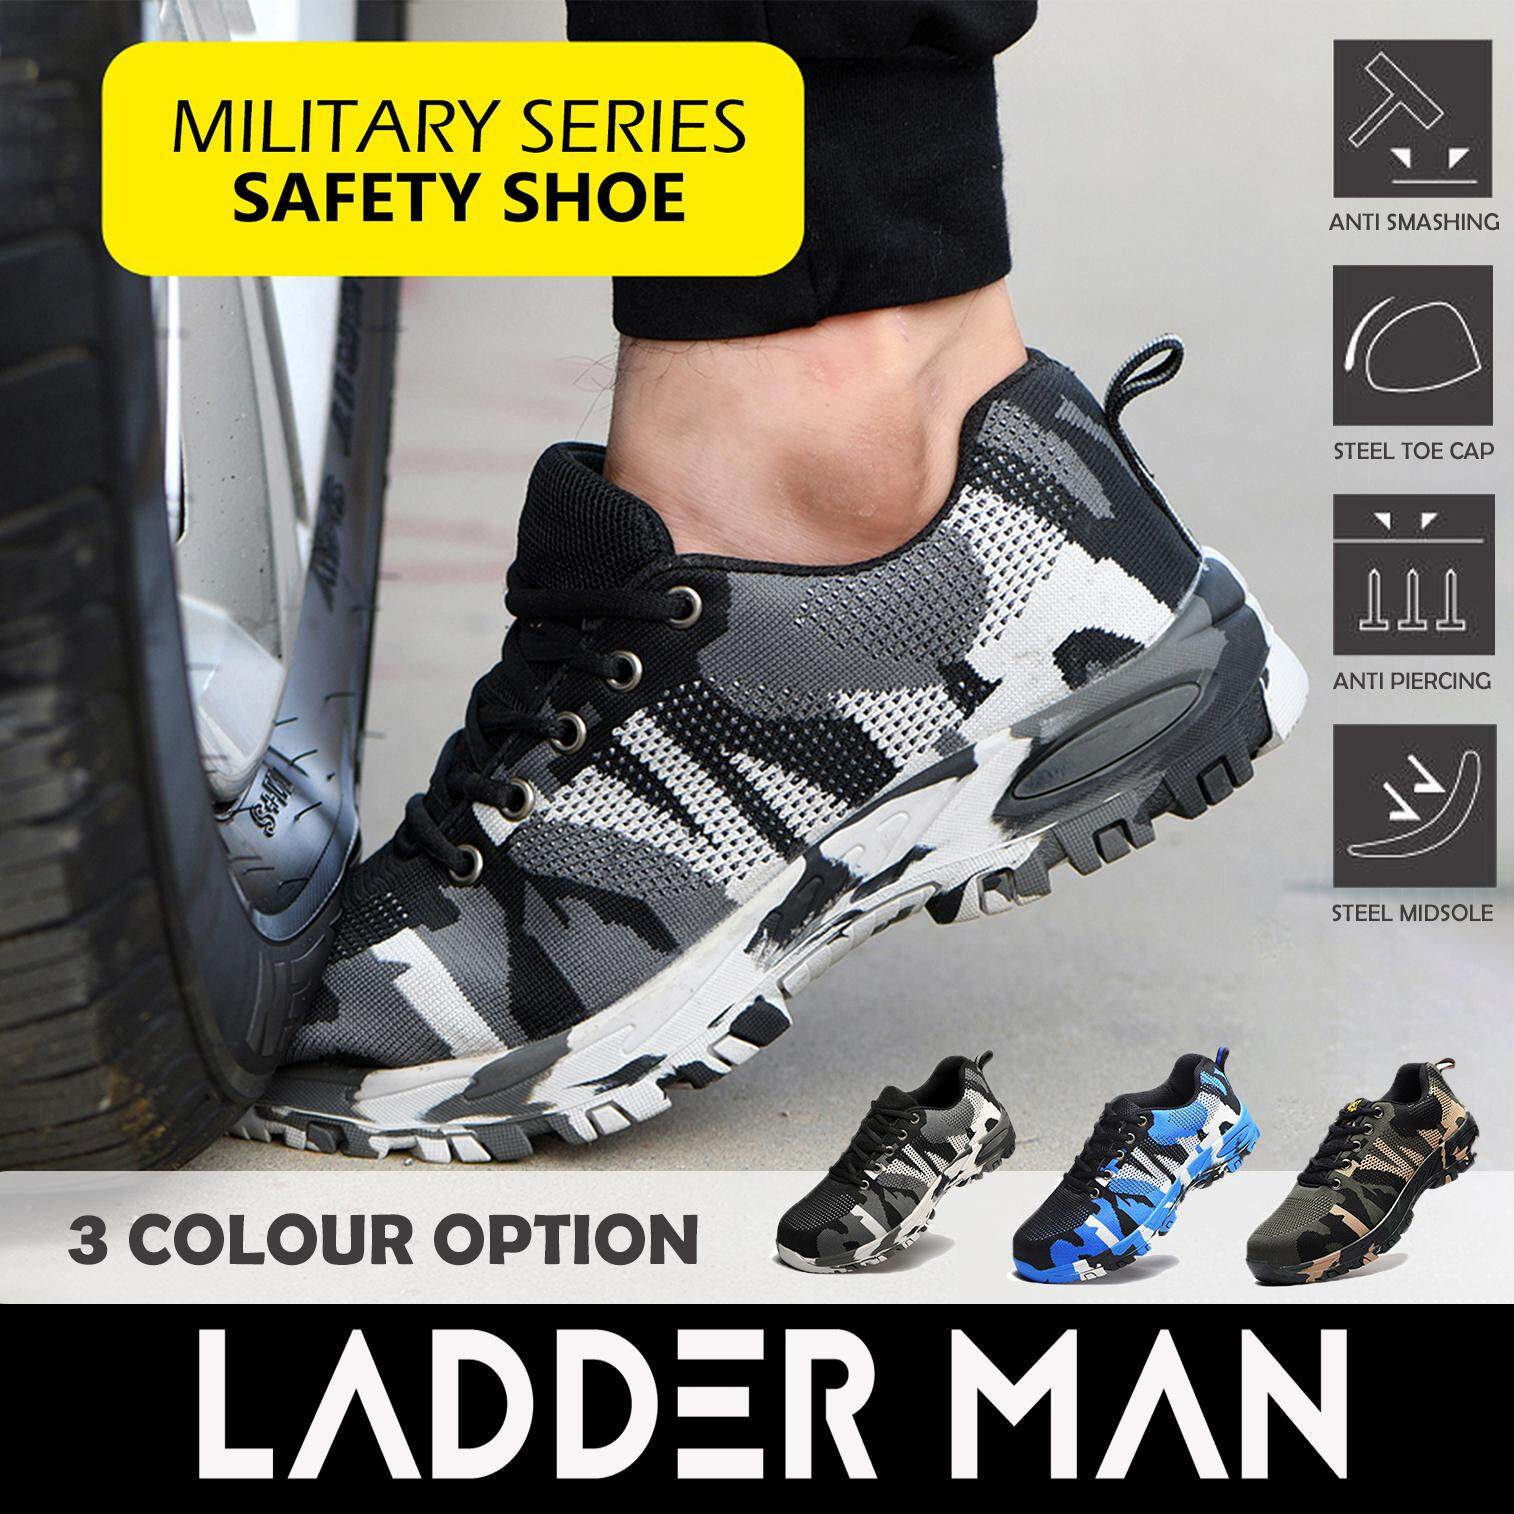 Military Series Steel Toe Cap Midsole Low Cut Safety Shoe Safety Boot Camouflage Boots Hiking Shoe